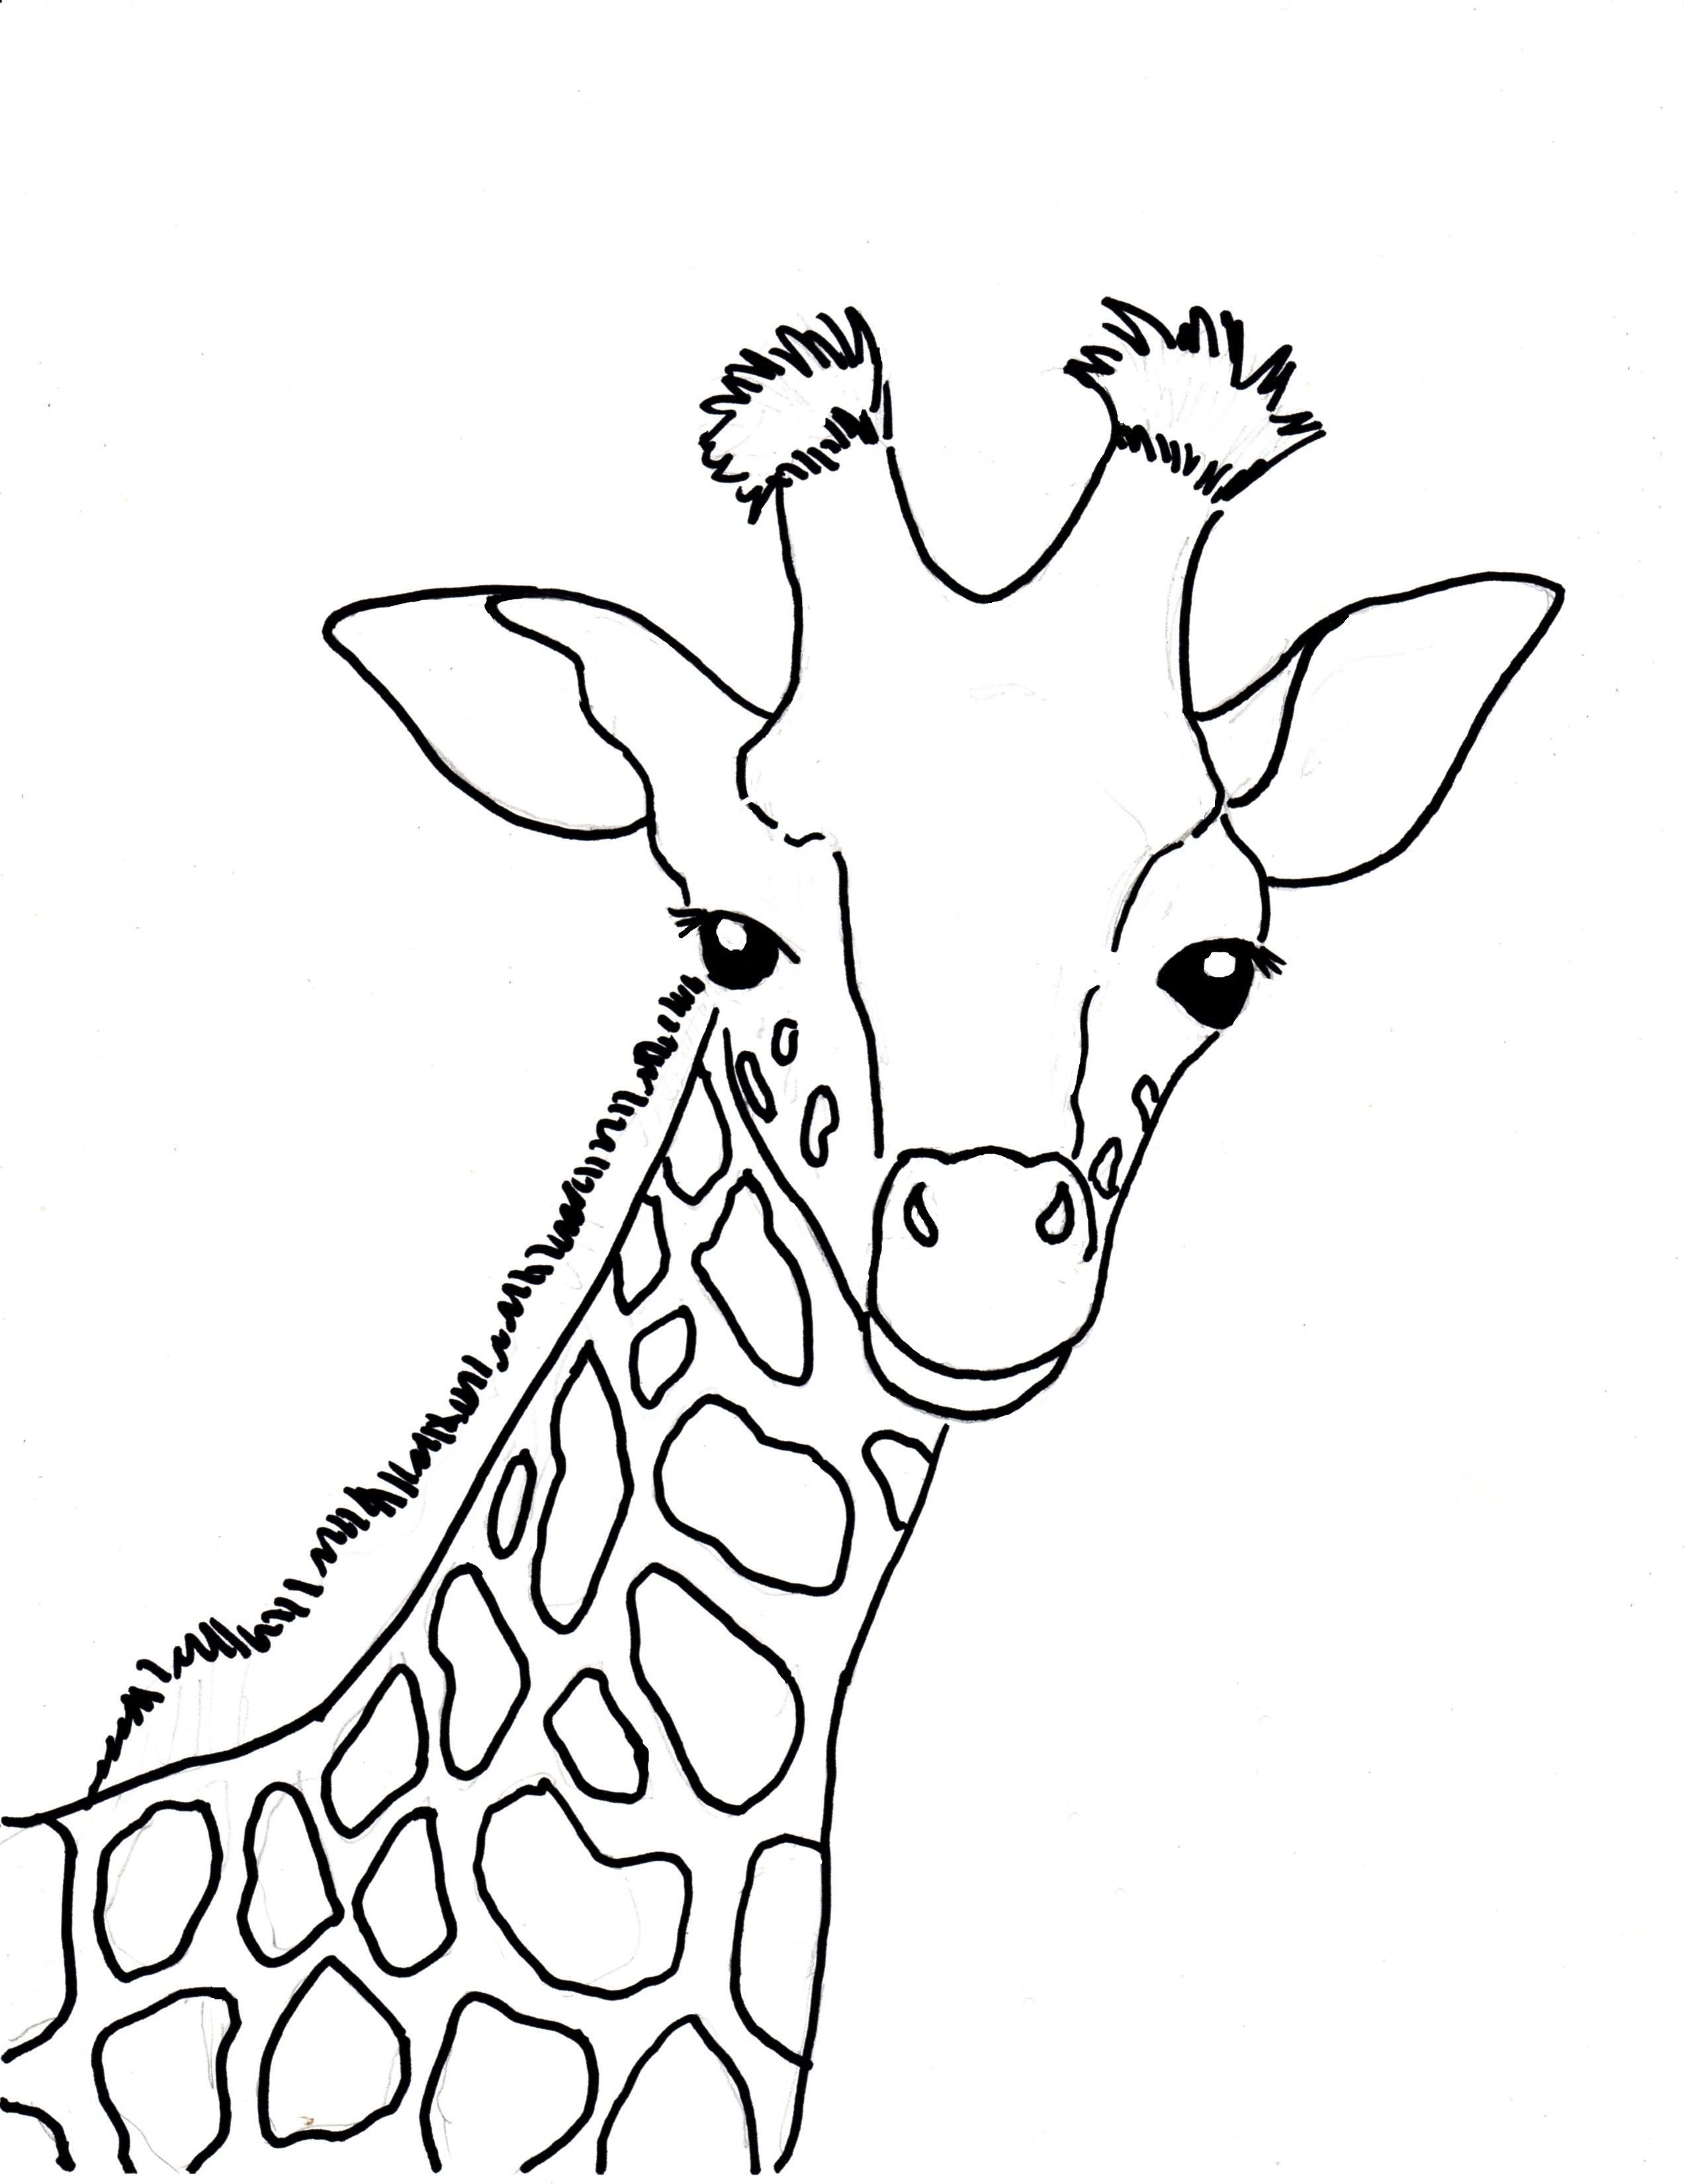 Baby Giraffe Coloring Pages - Baby Giraffe Coloring Page Samantha Bell